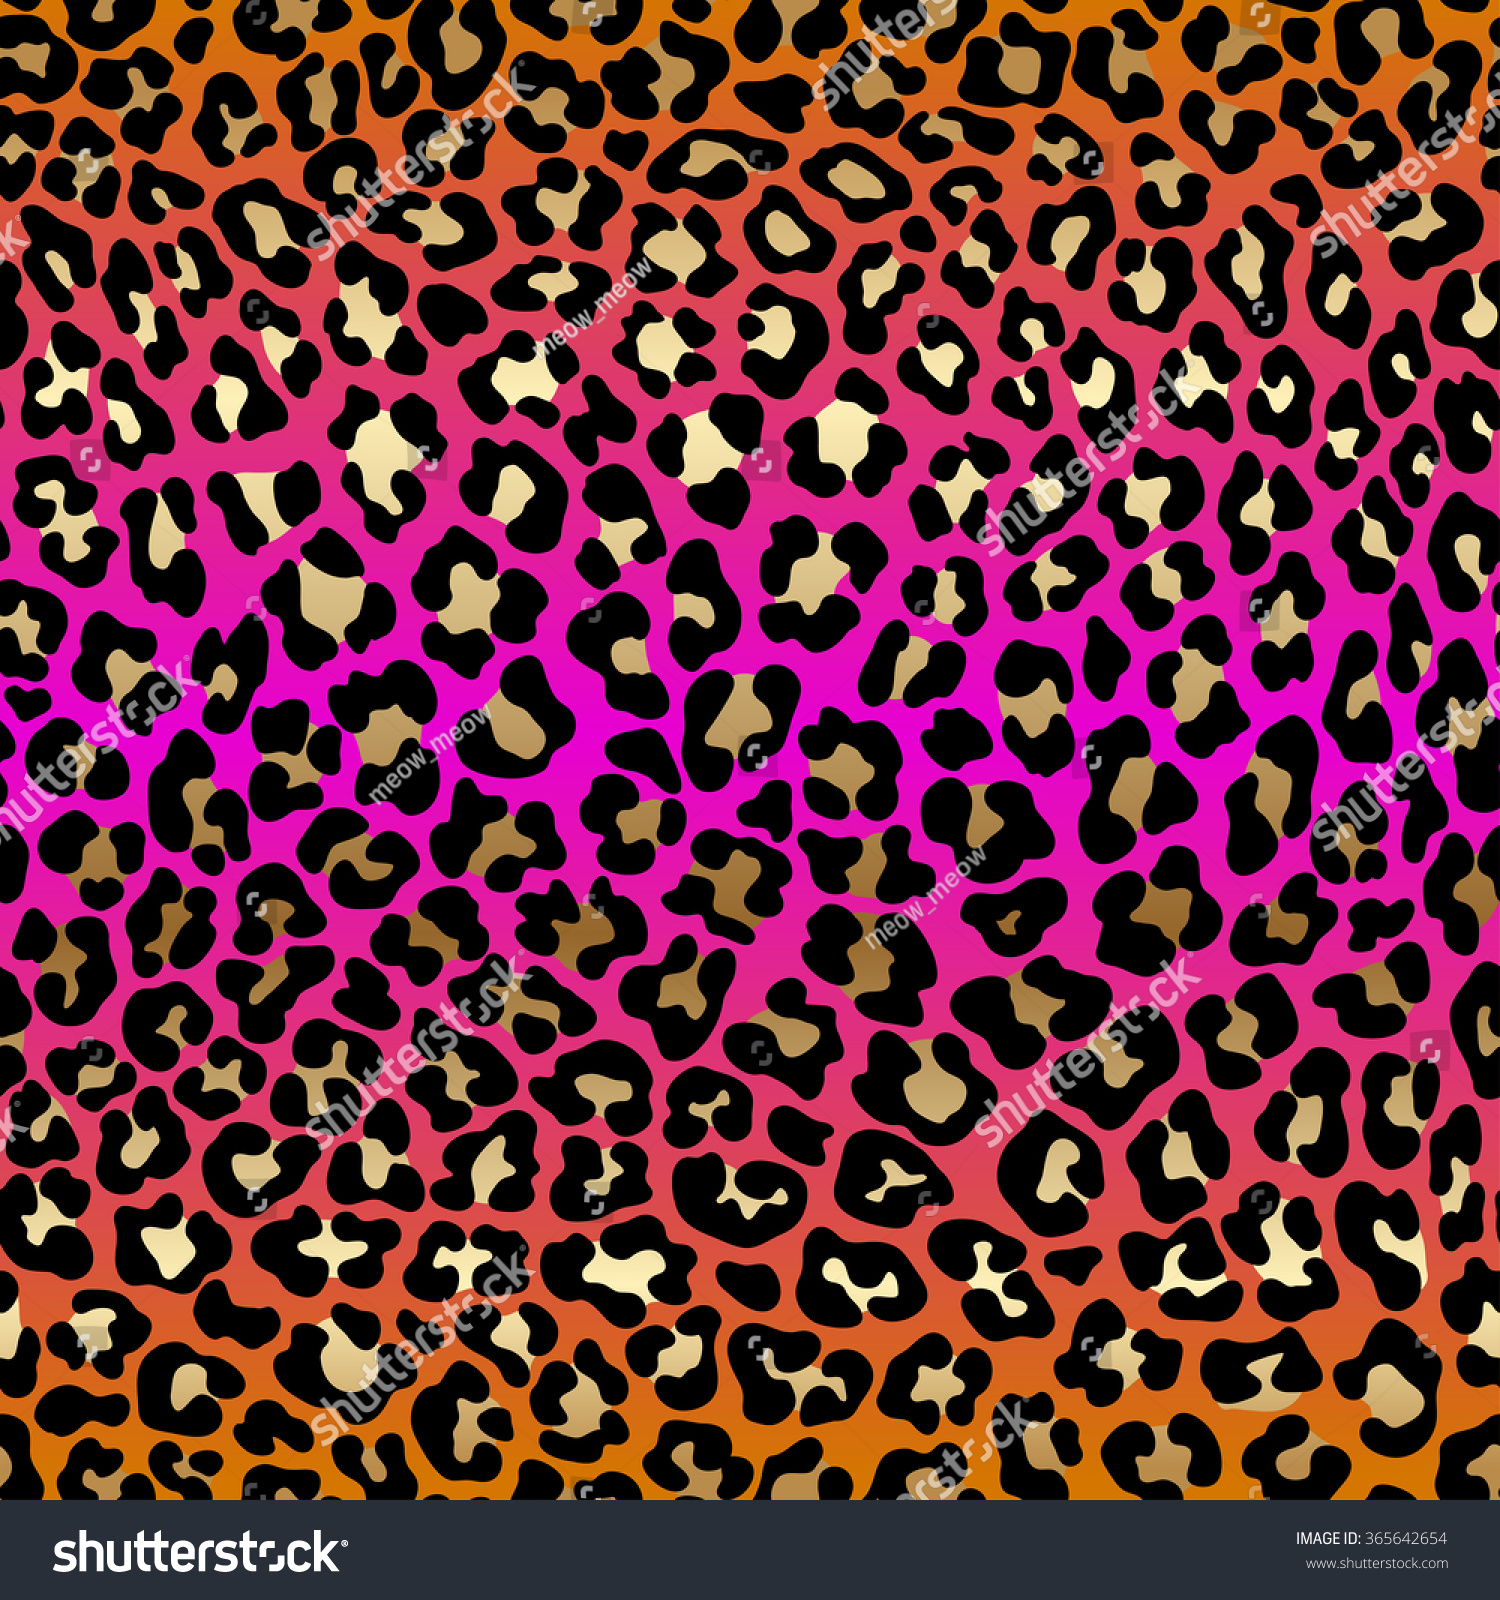 Colorful cheetah print backgrounds for twitter